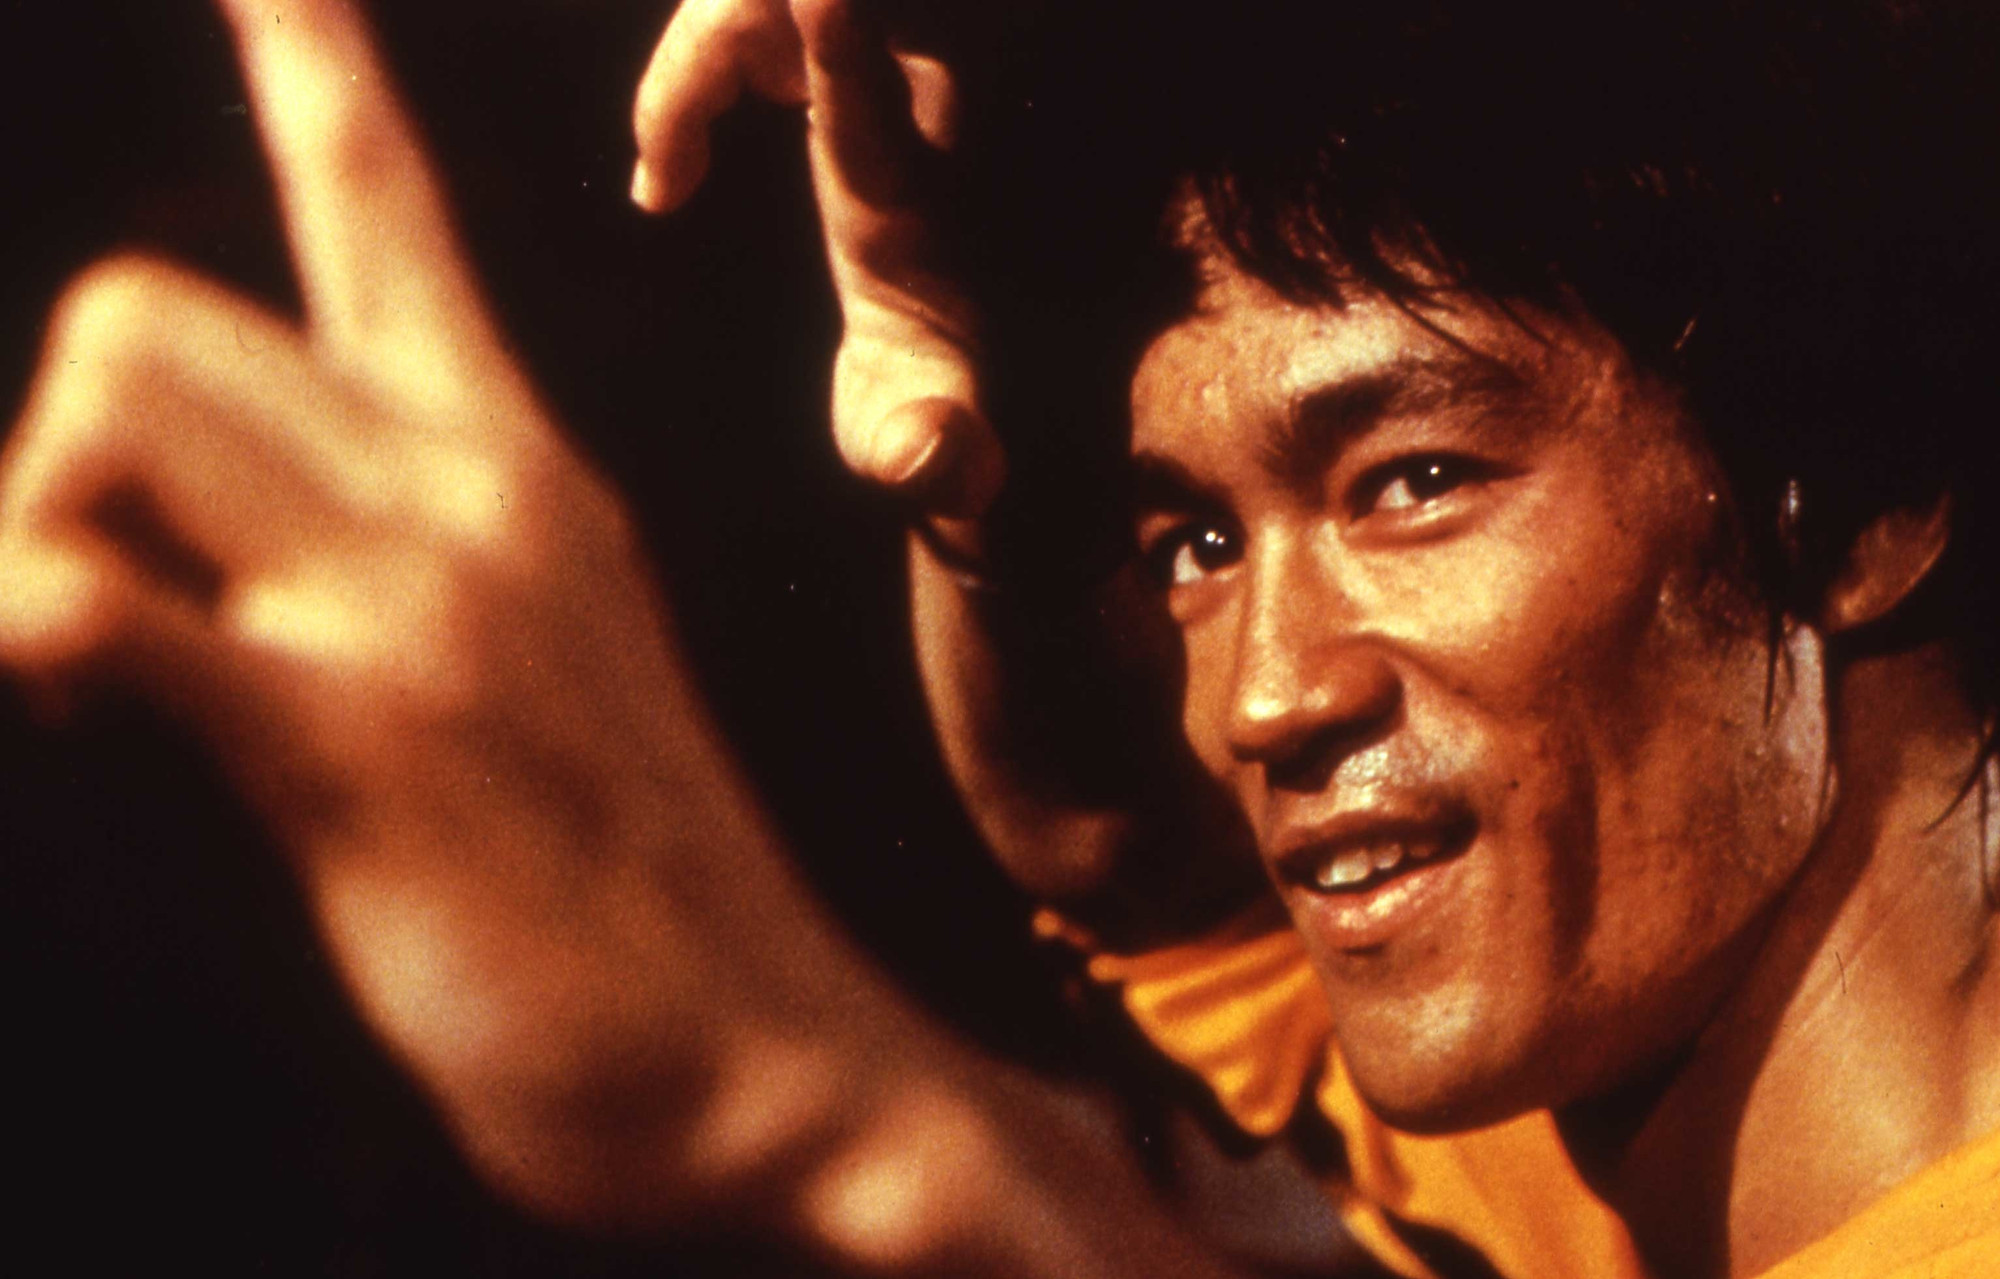 Game of Death. 1979. Hong Kong. Directed by Bruce Lee, Robert Clouse, Sammo Hung. © 2010 Fortune Star Media Limited